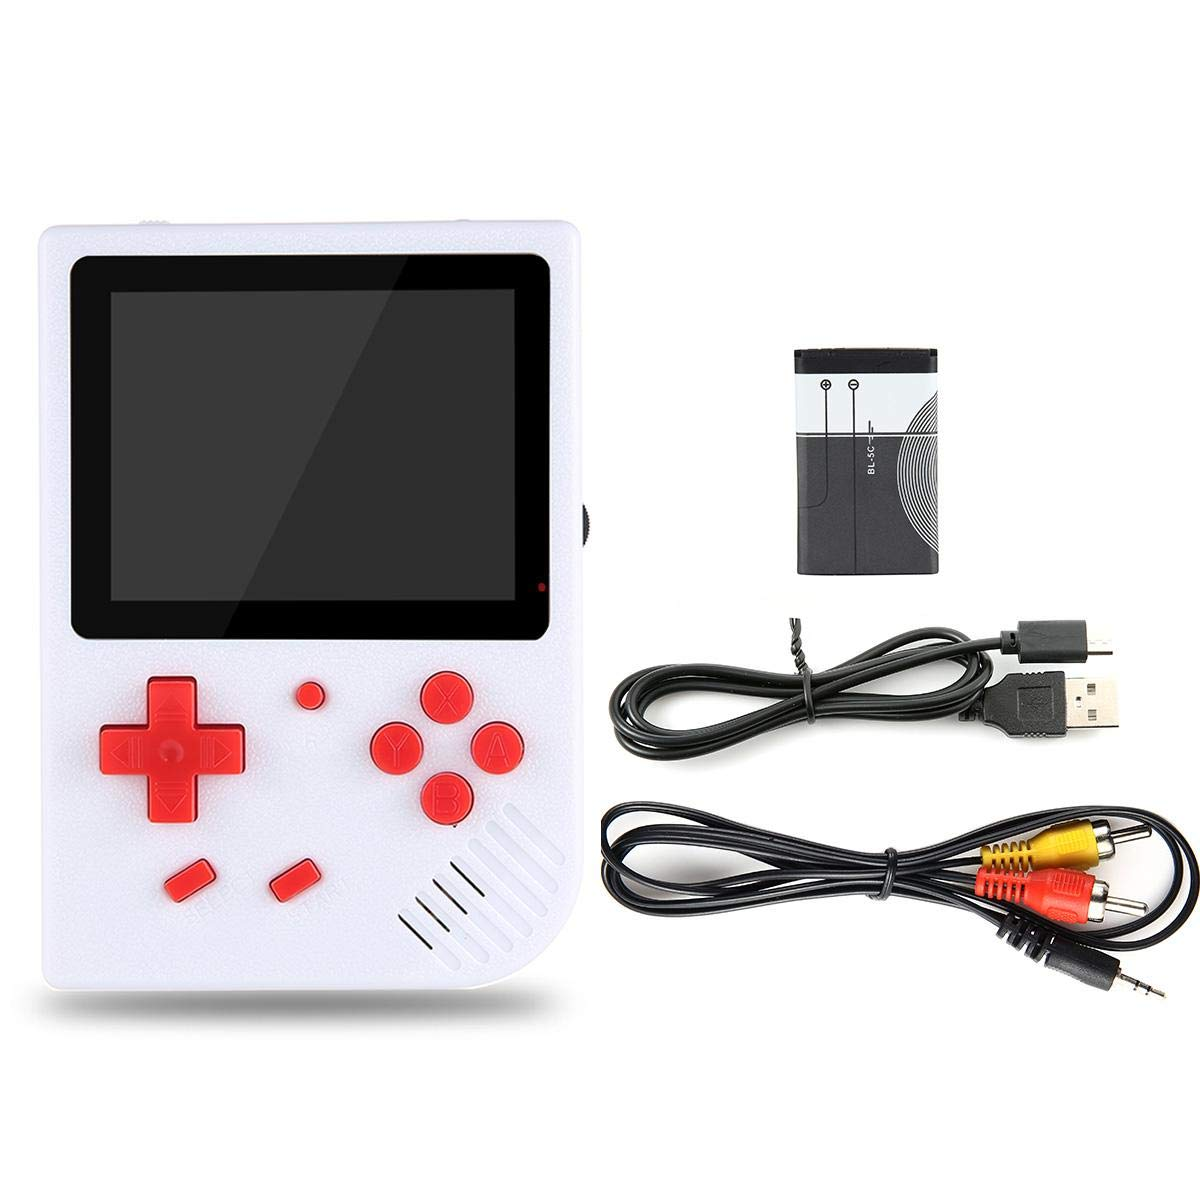 LAYOPO Retro Mini Handheld Video Game Console Gameboy Built-in 600 Classic Games Gift by LAYOPO (Image #7)